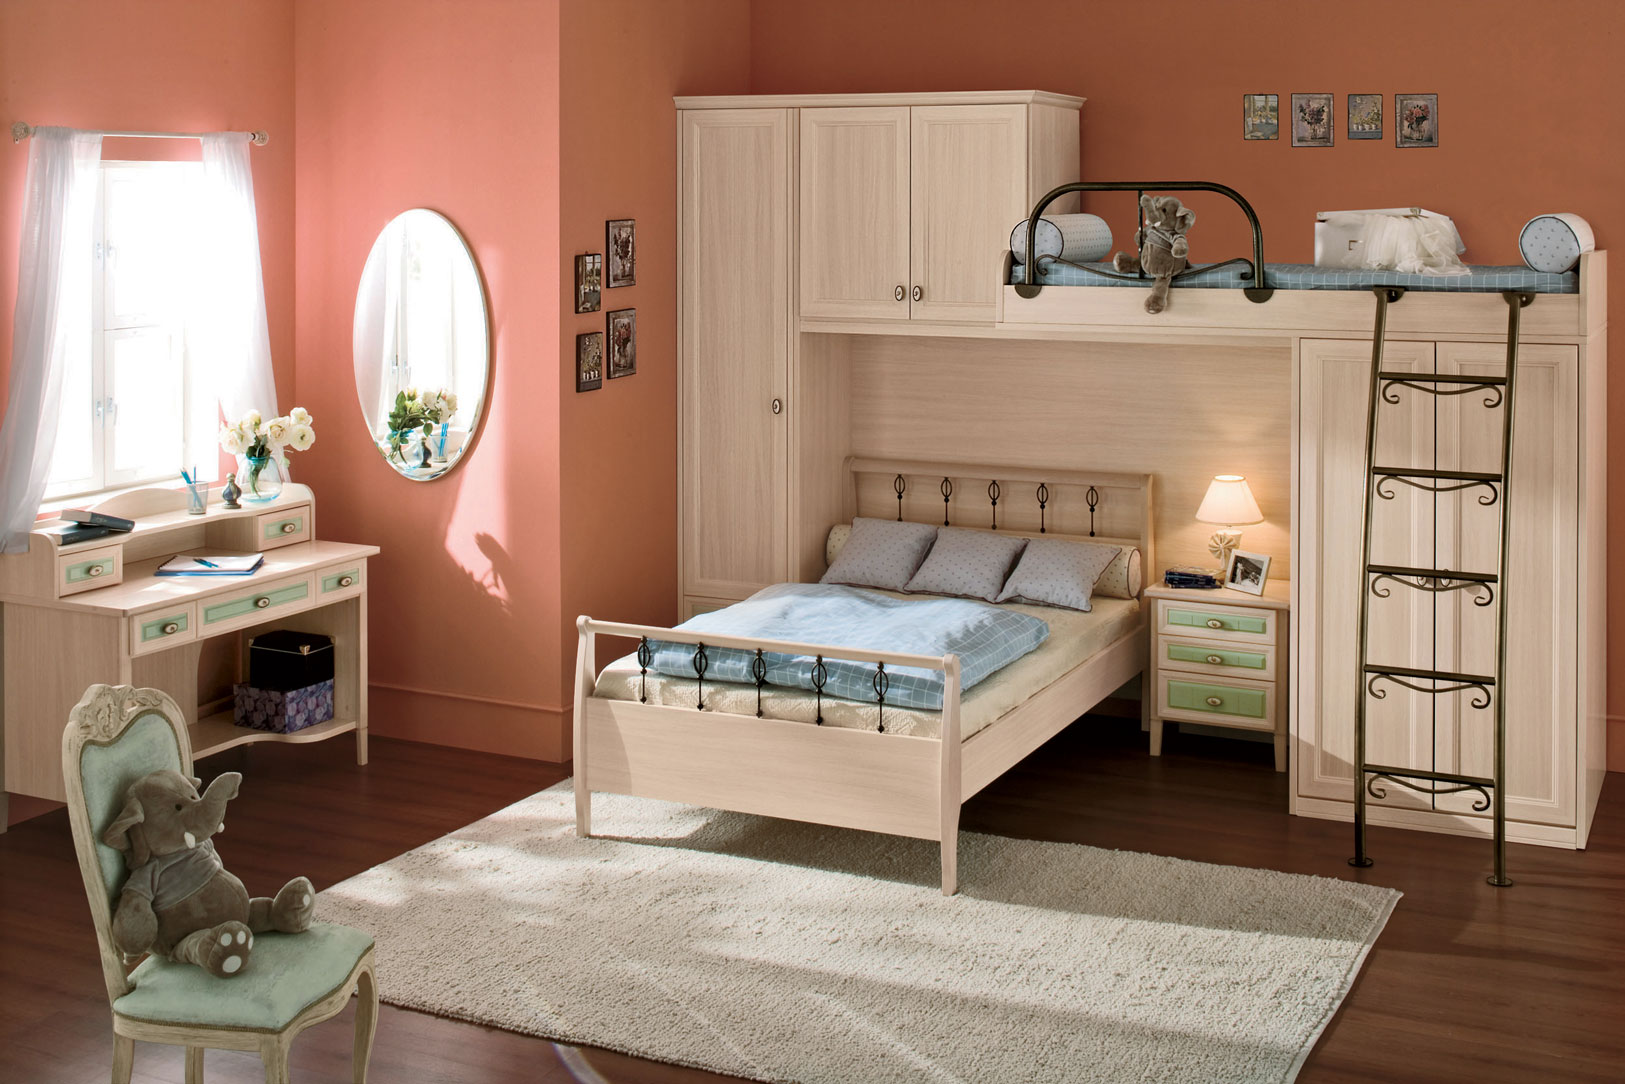 Home Sweet Home Kid S Rooms From Russian Maker Akossta